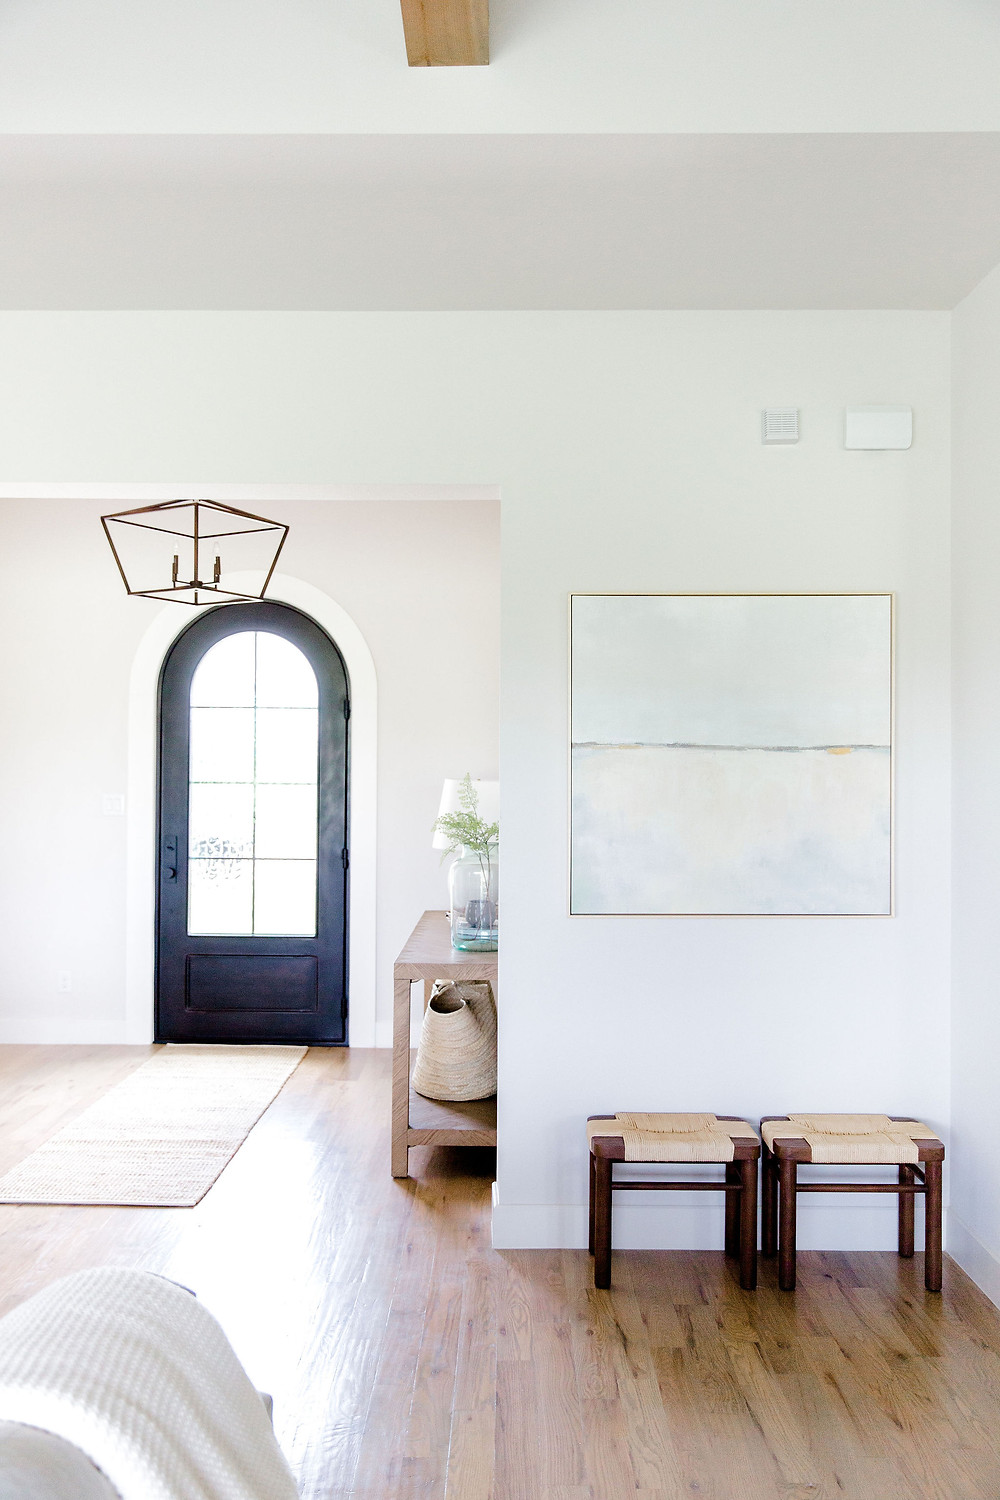 Entry space by Laura Design and Co using wood stools & neutral artwork